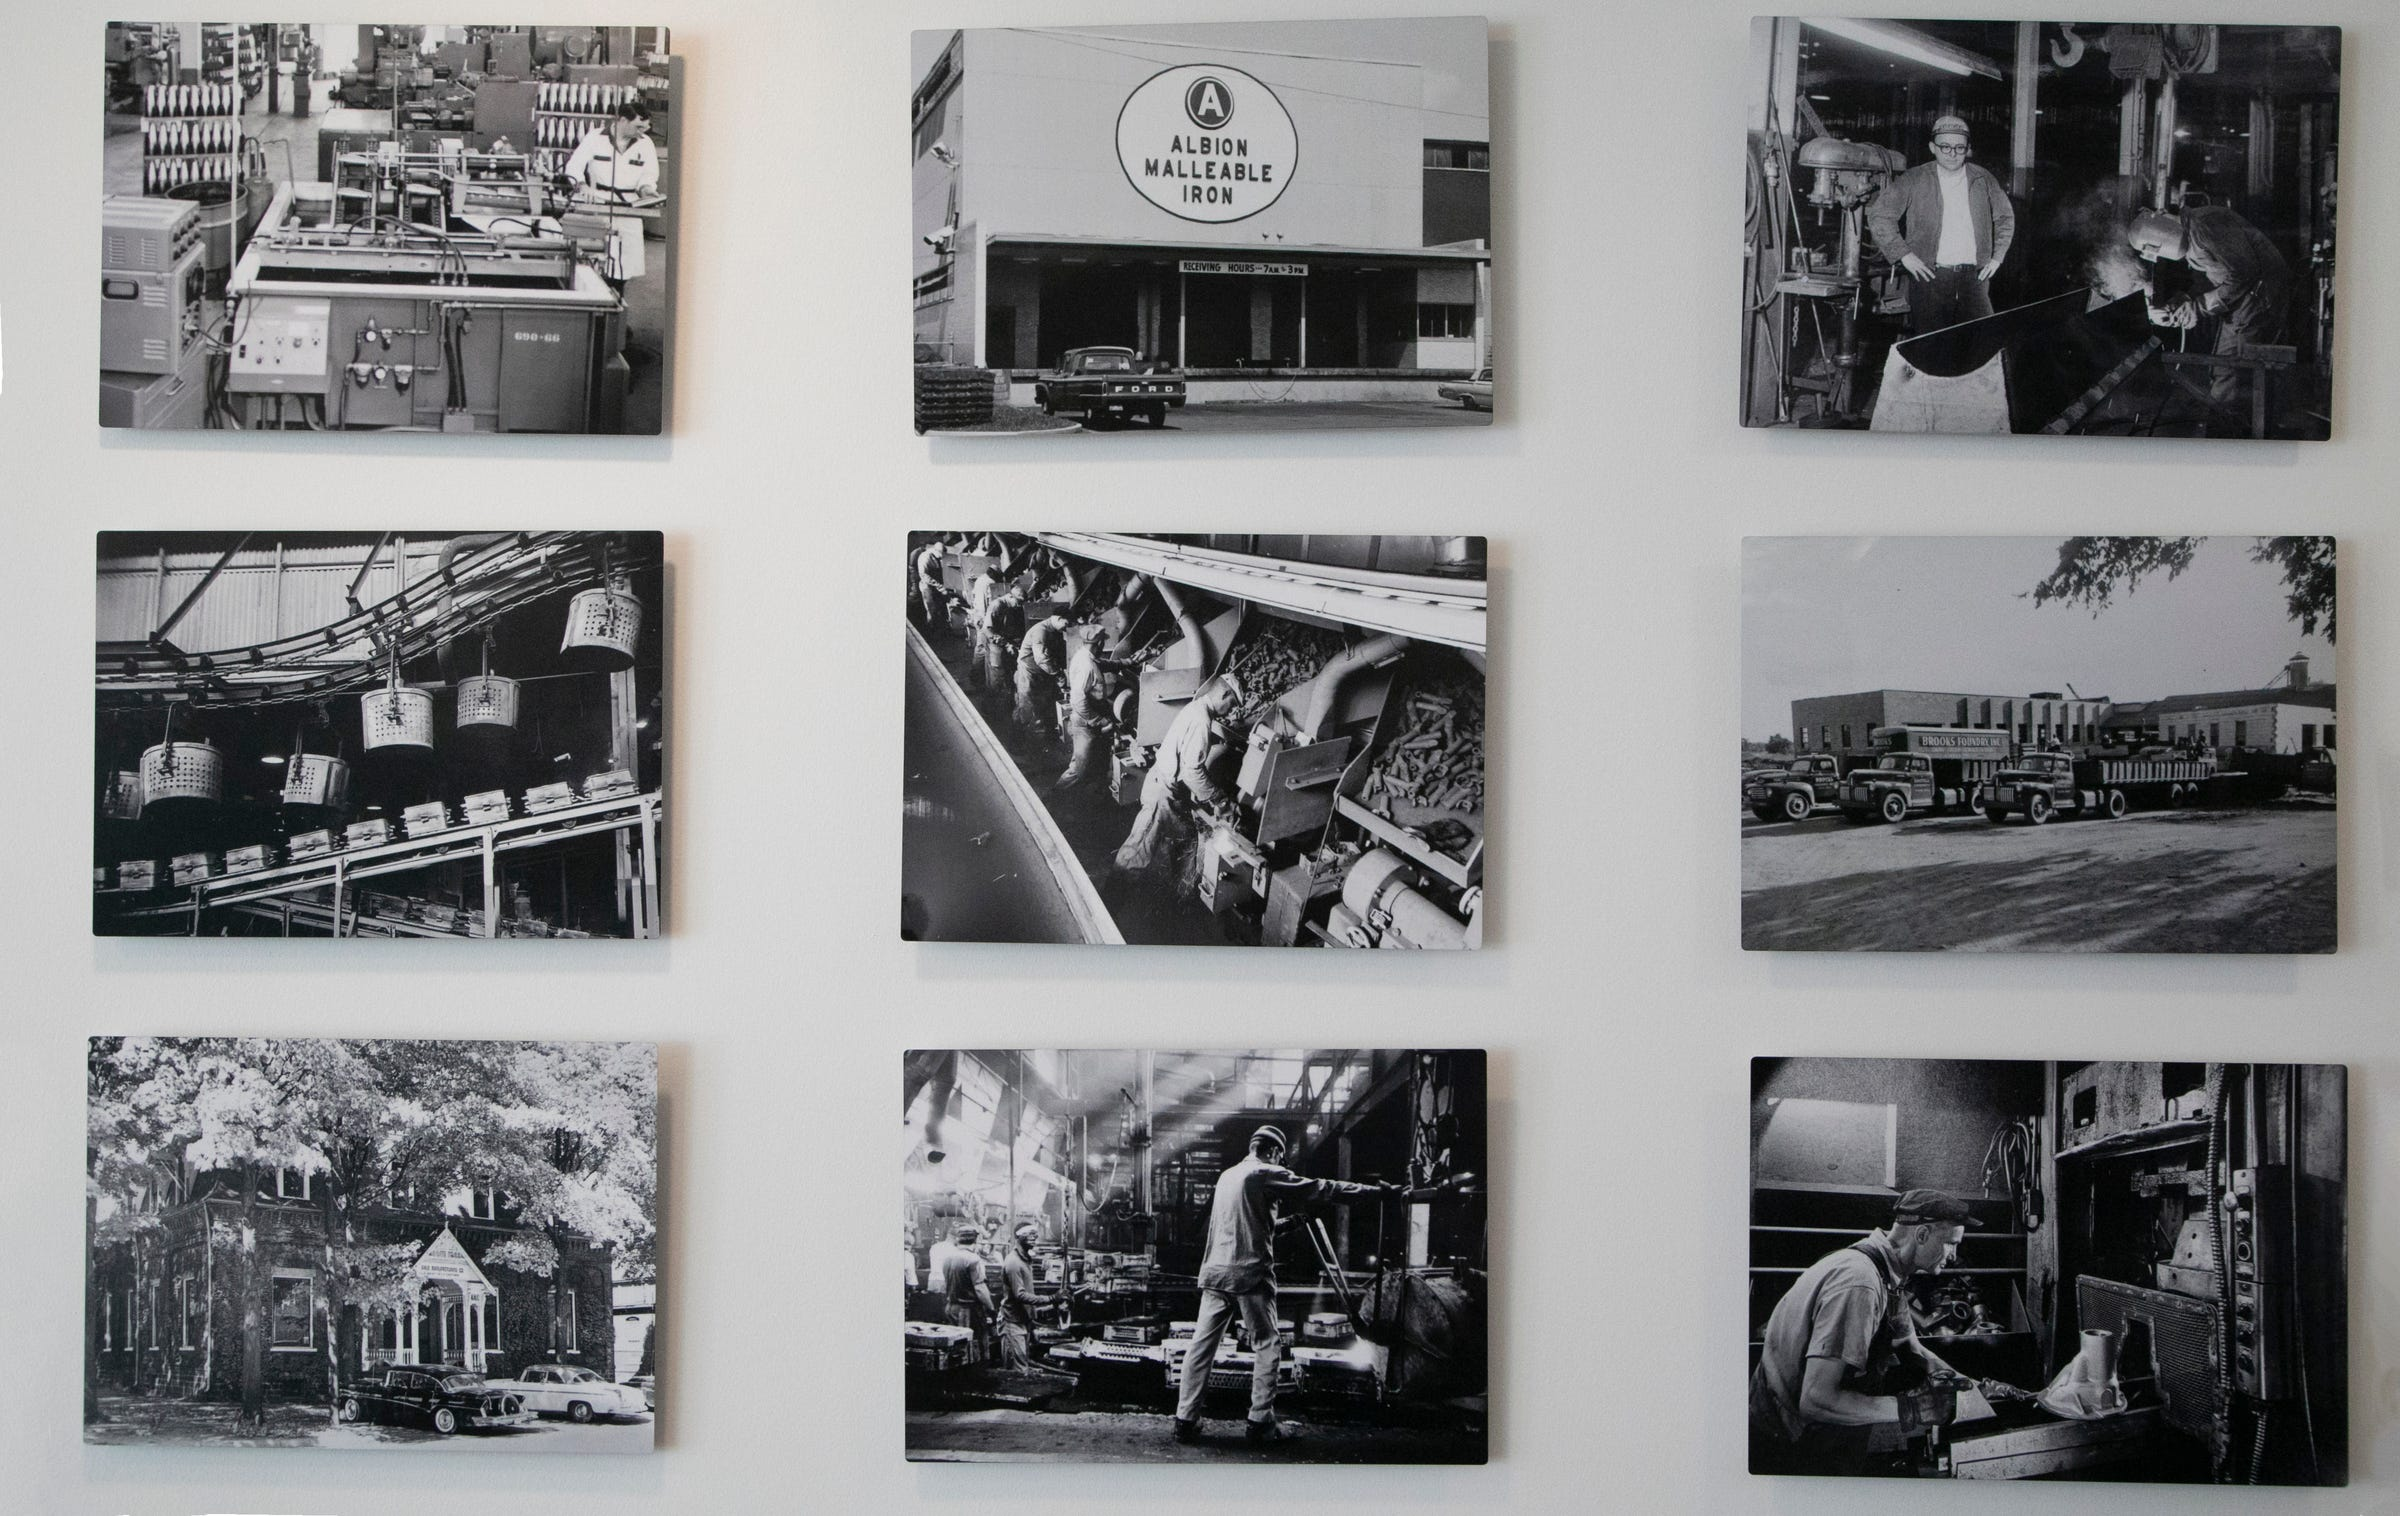 Historic photos of the foundry industry that was once the main occupation in Albion on Tuesday decorate the walls of the Foundry Bakehouse and Deli in downtown Albion.